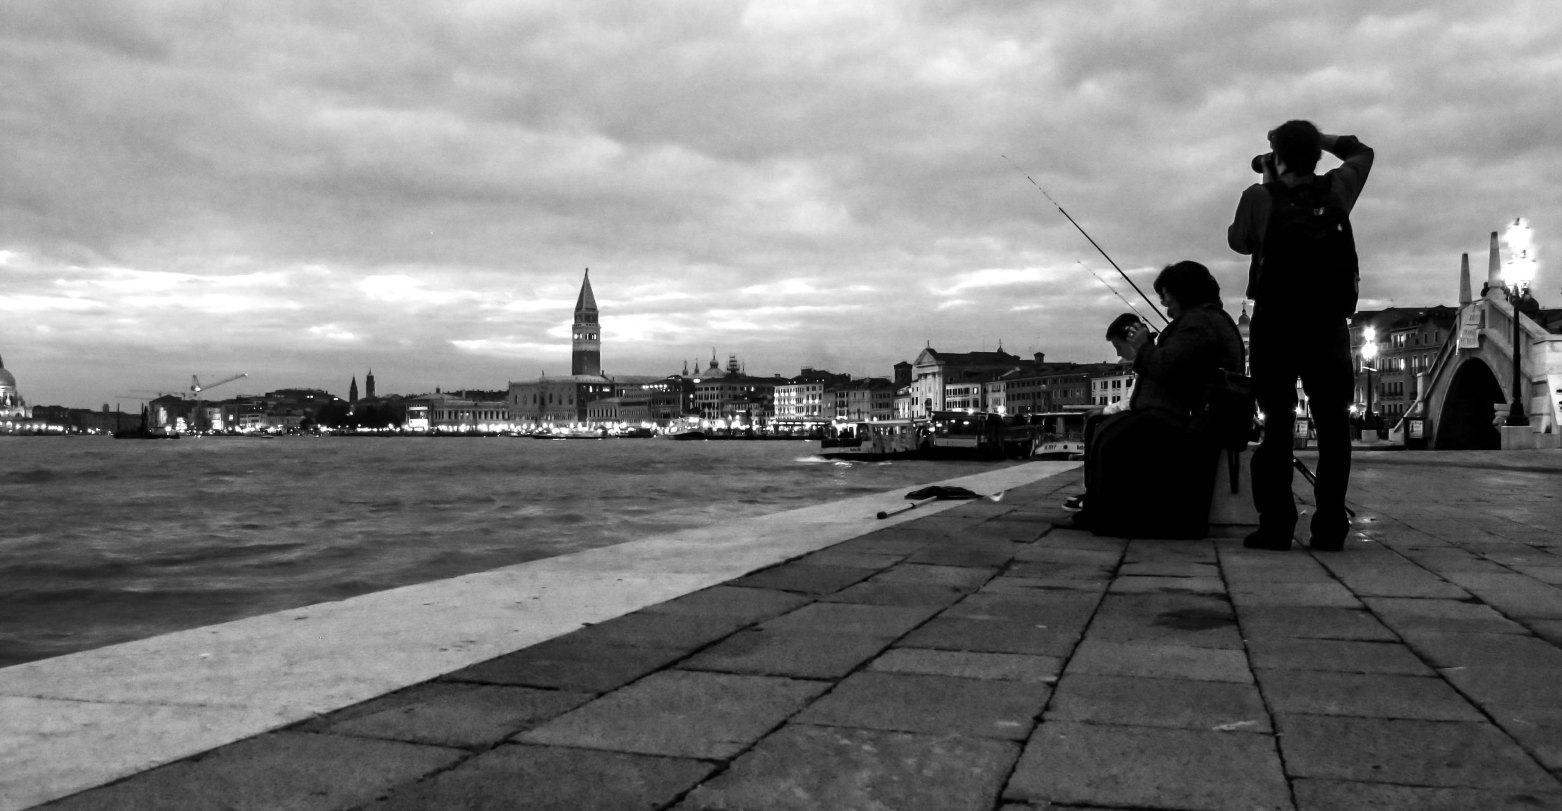 People fishing in Venice, San Marco on the background.